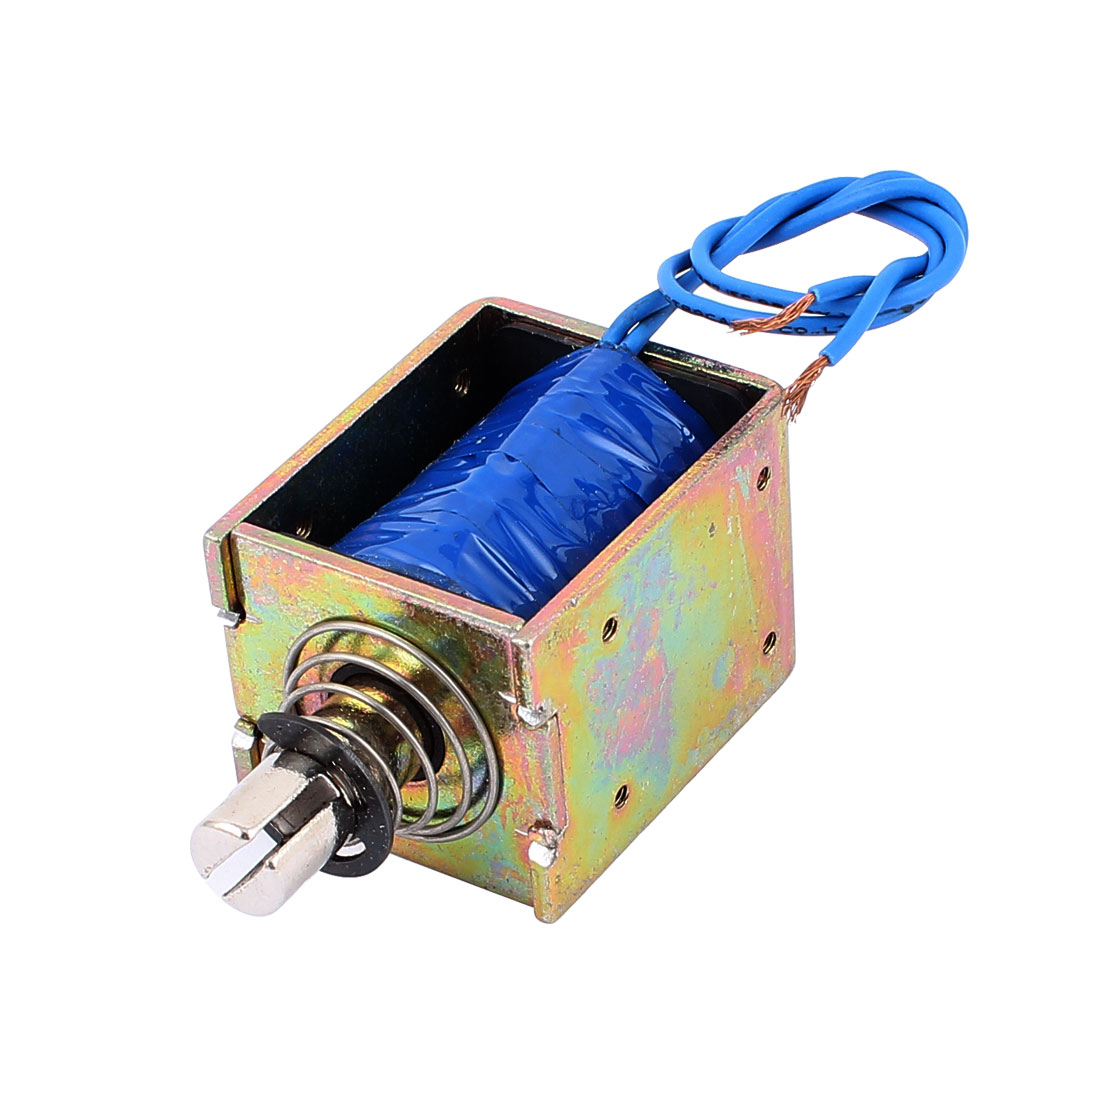 DC24V 2A 10mm 60N Spring Load Push Pull Actuator Electromagnet Solenoid JF-1250B